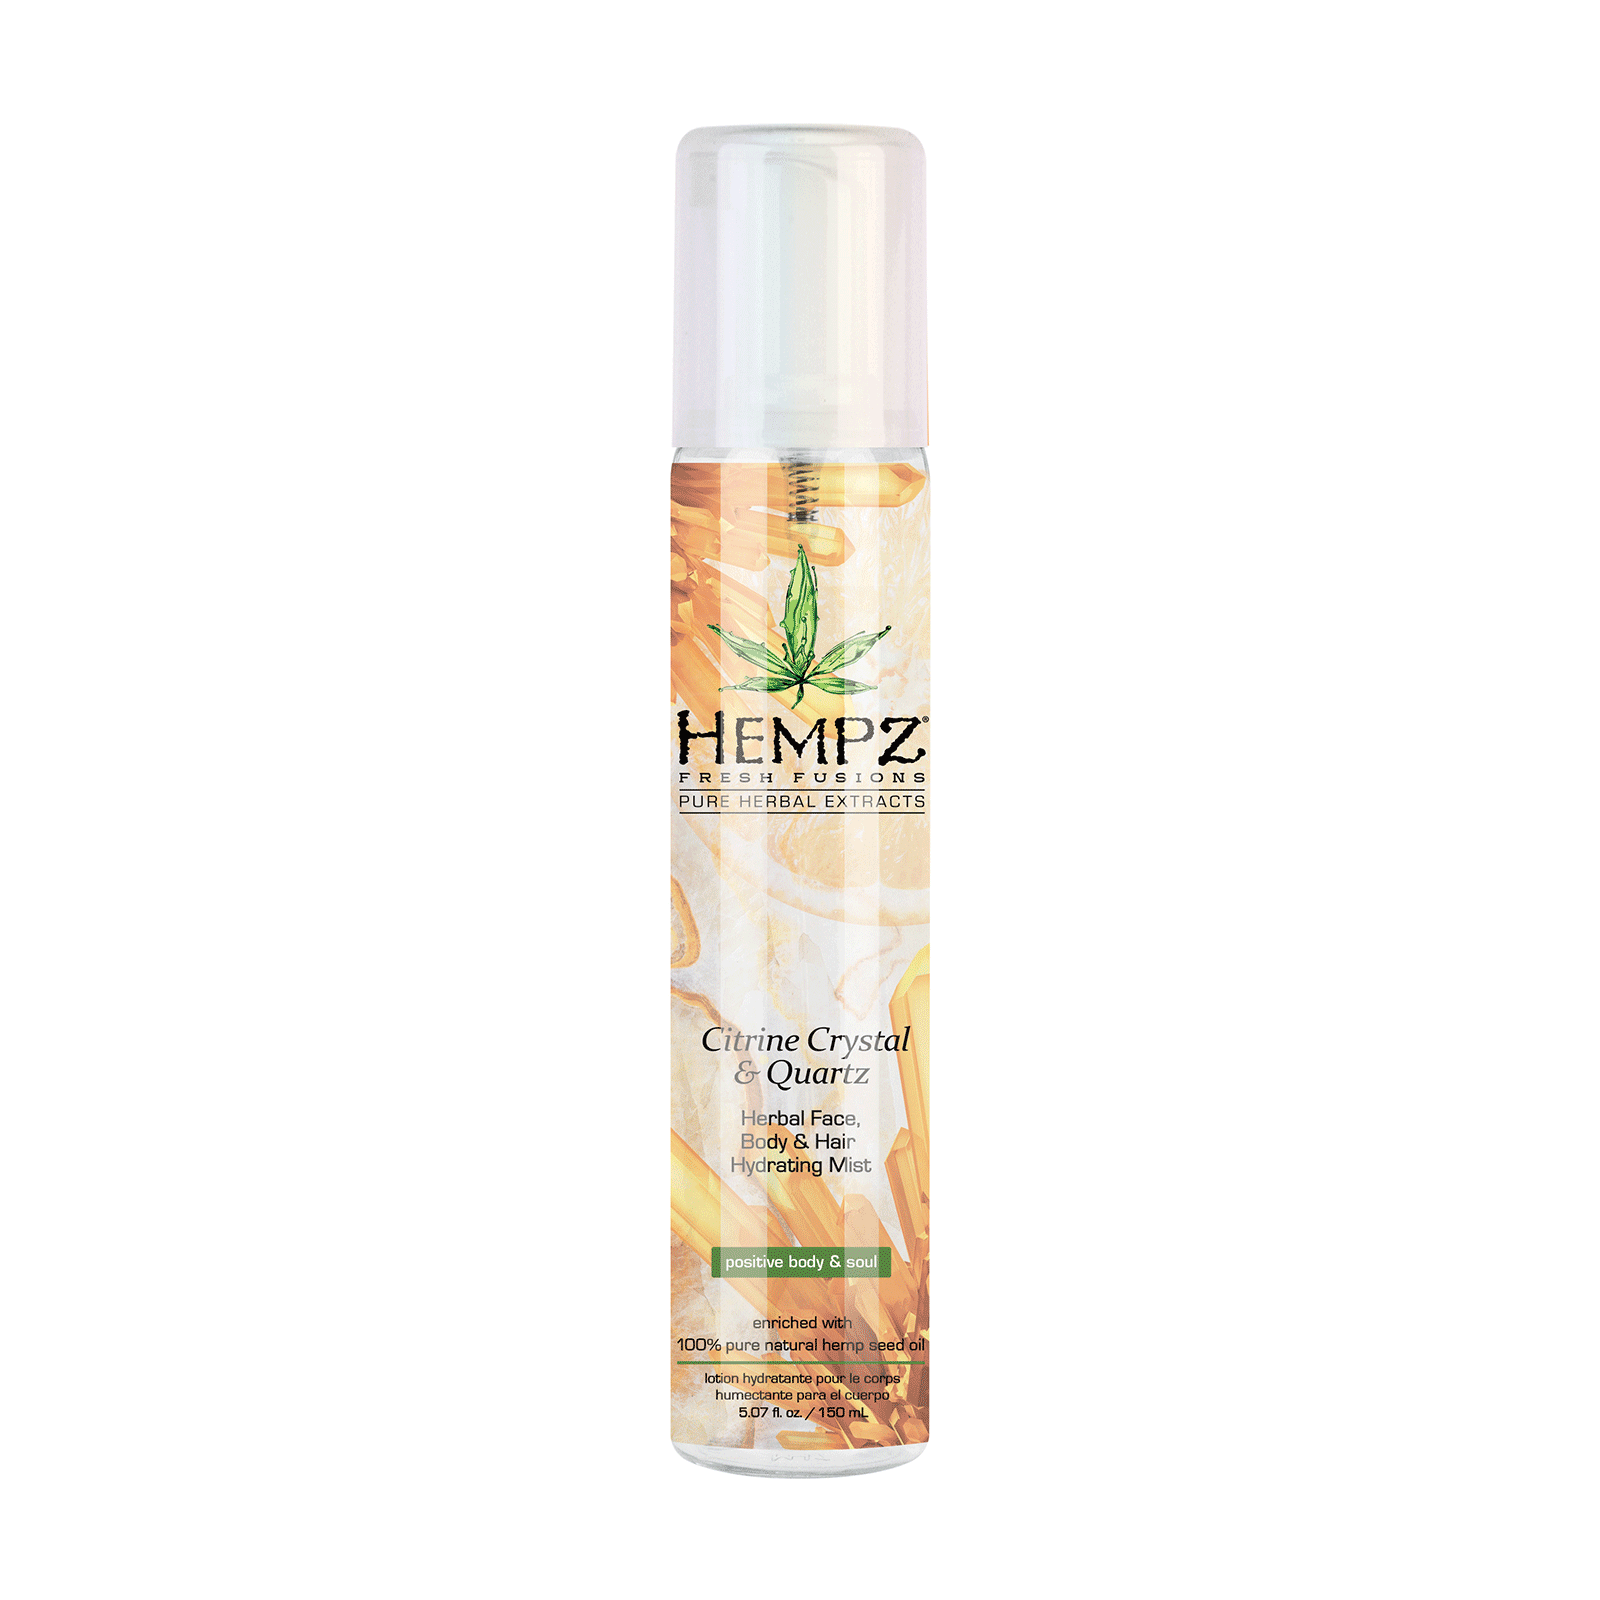 Citrine Crystal & Quartz Herbal, Body & Hair Hydrating Mist